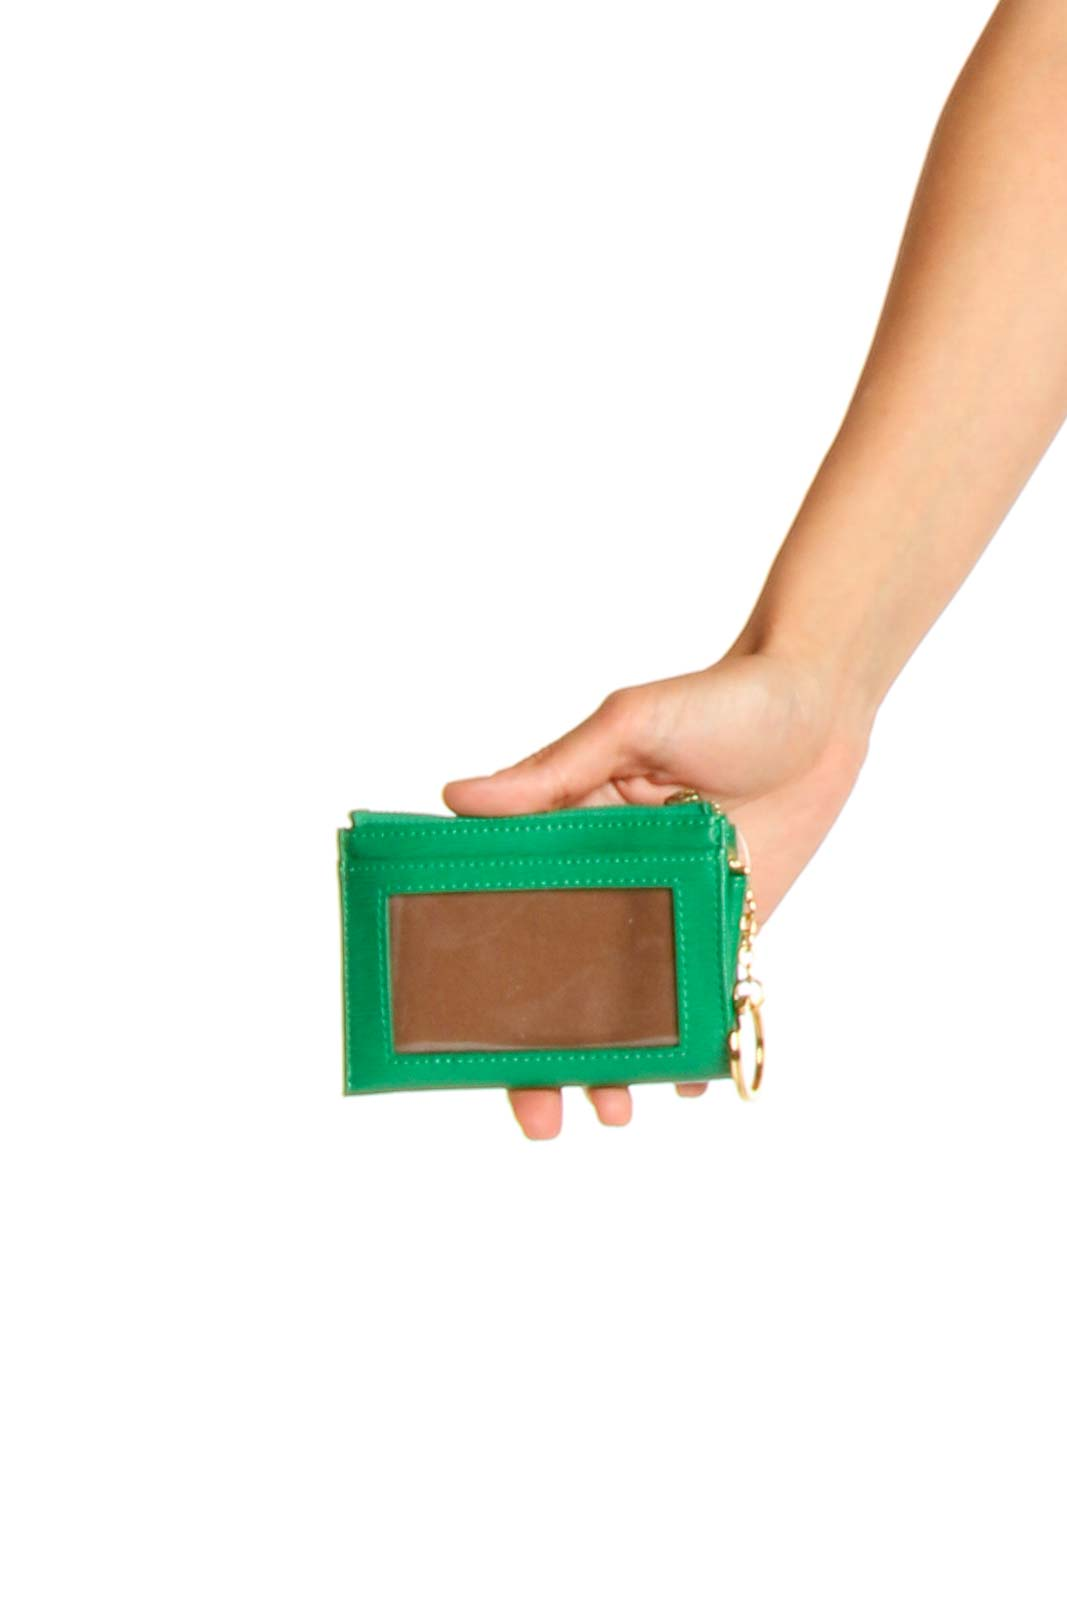 Green Clutch Front